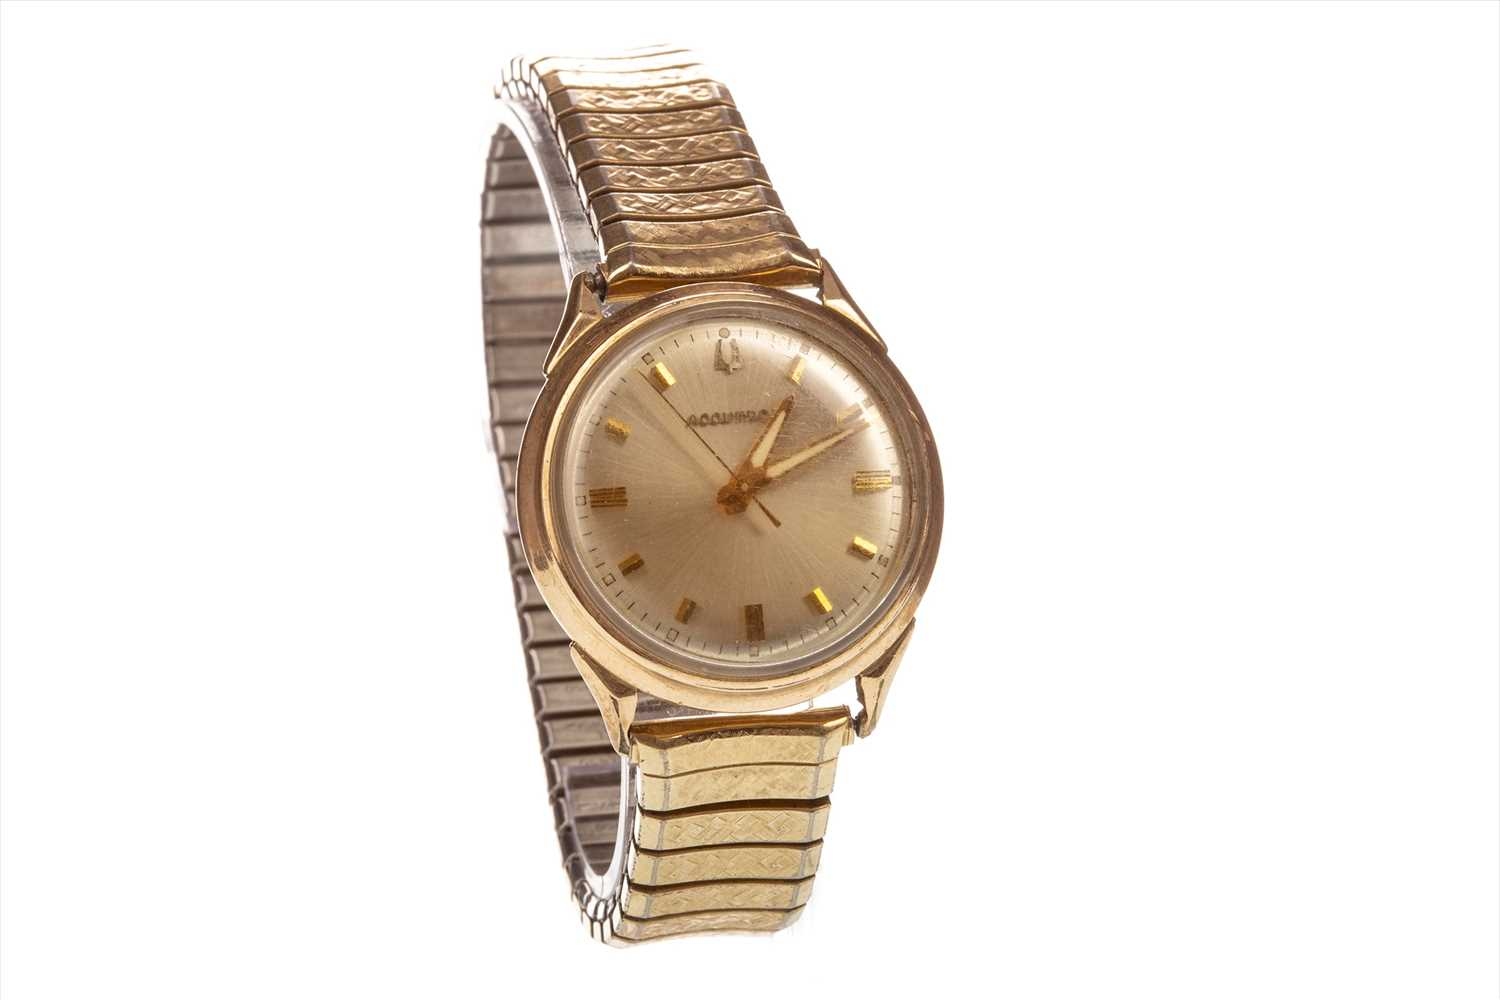 Lot 768-A GENTLEMAN'S ACCUTRON QUARTZ WATCH